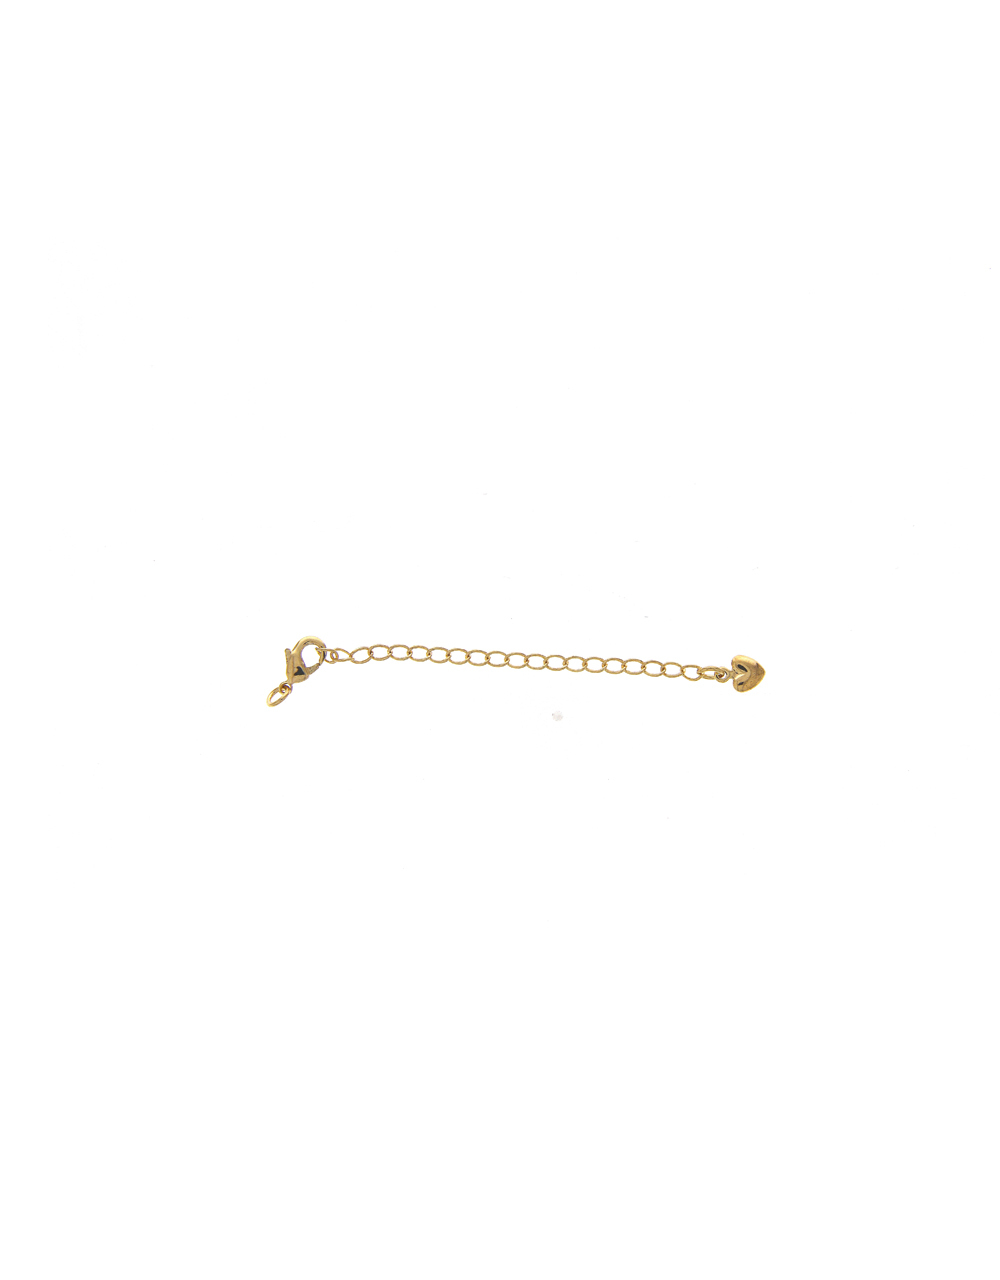 Gold Finish Hook-Kadi For Jewellery Accessories